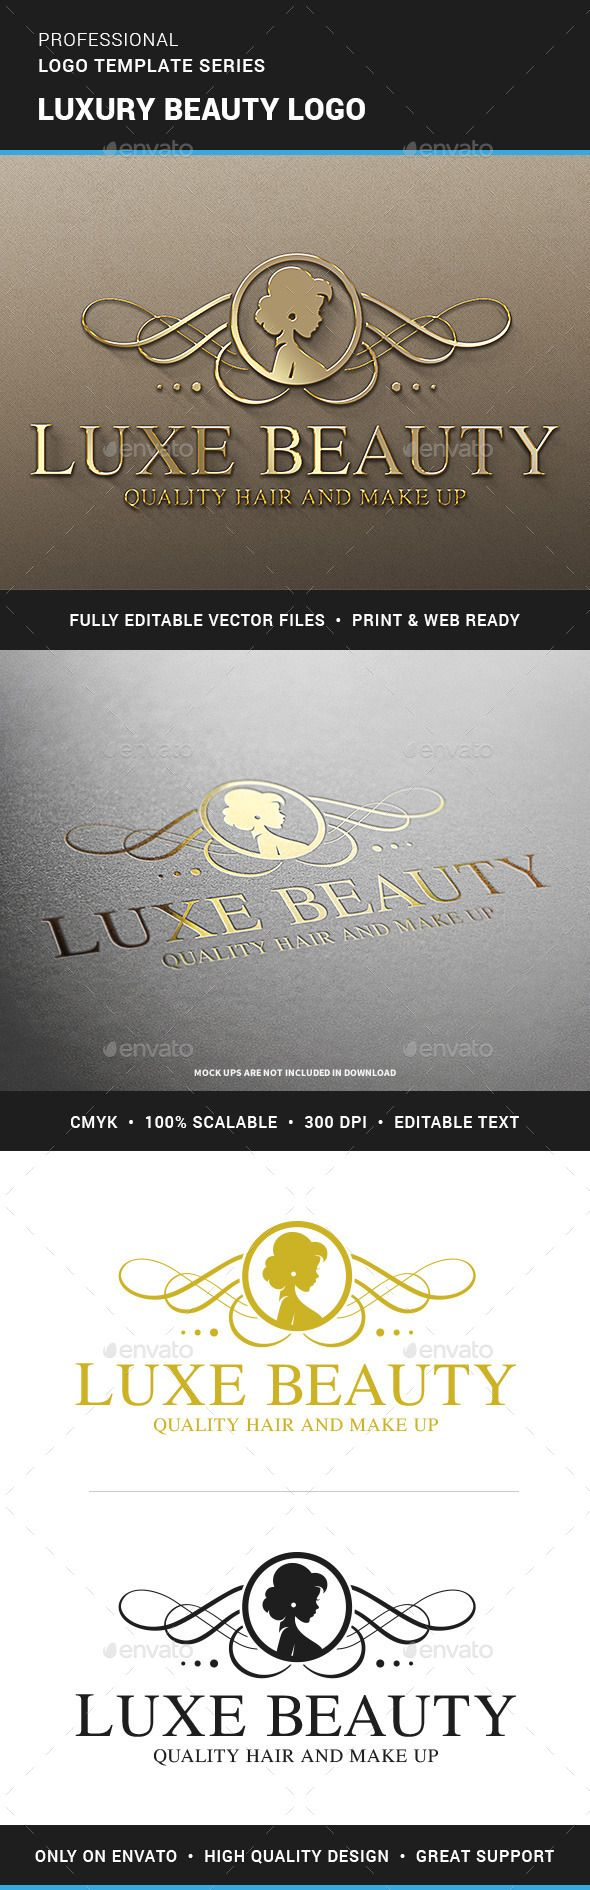 30 Hair Salon Logo Designs Ideas Examples Design Trends Premium - Luxury beauty logo template